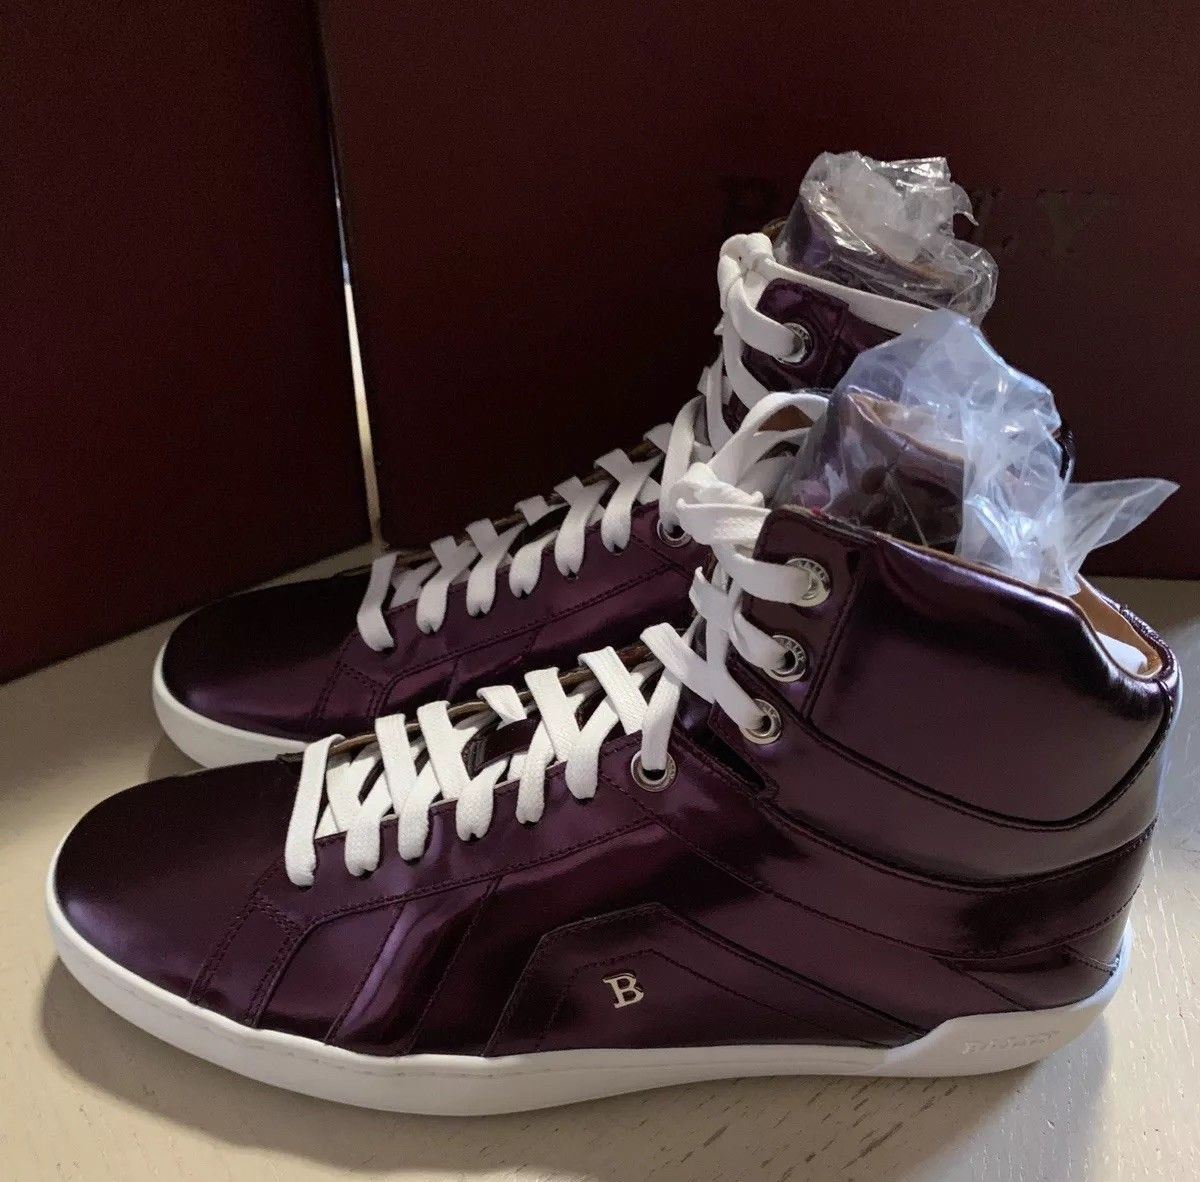 New $700 Bally Men Eticon Leather High-Top Sneakers Merlot 8 US Switzerland